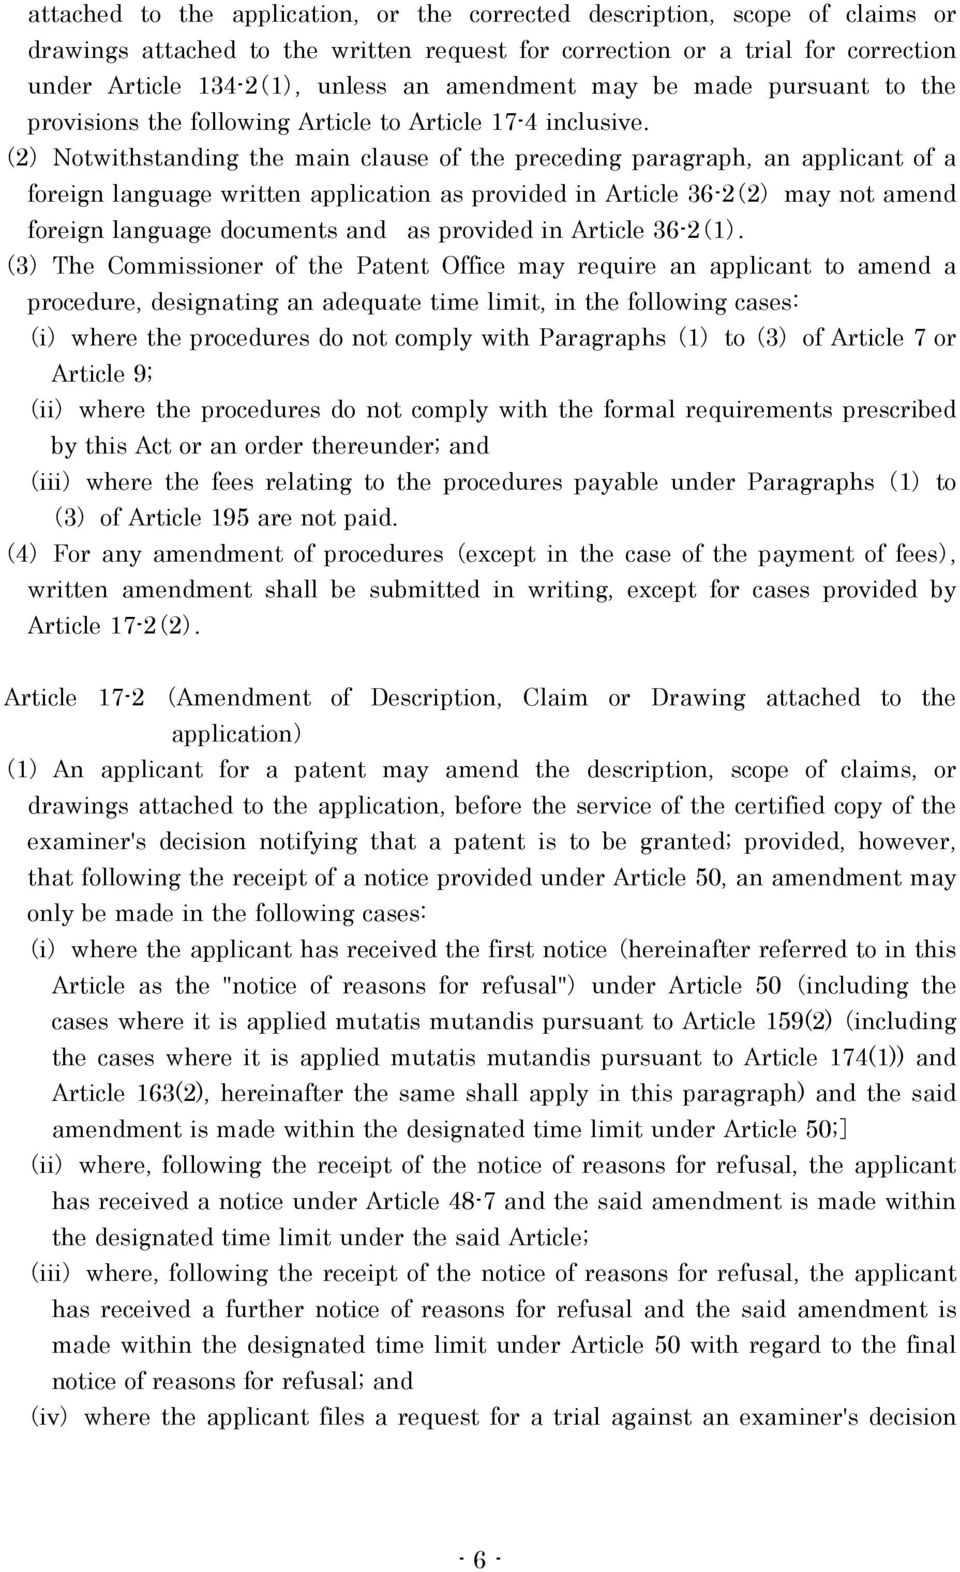 Notwithstanding the main clause of the preceding paragraph, an applicant of a foreign language written application as provided in Article 36-2 may not amend foreign language documents and as provided